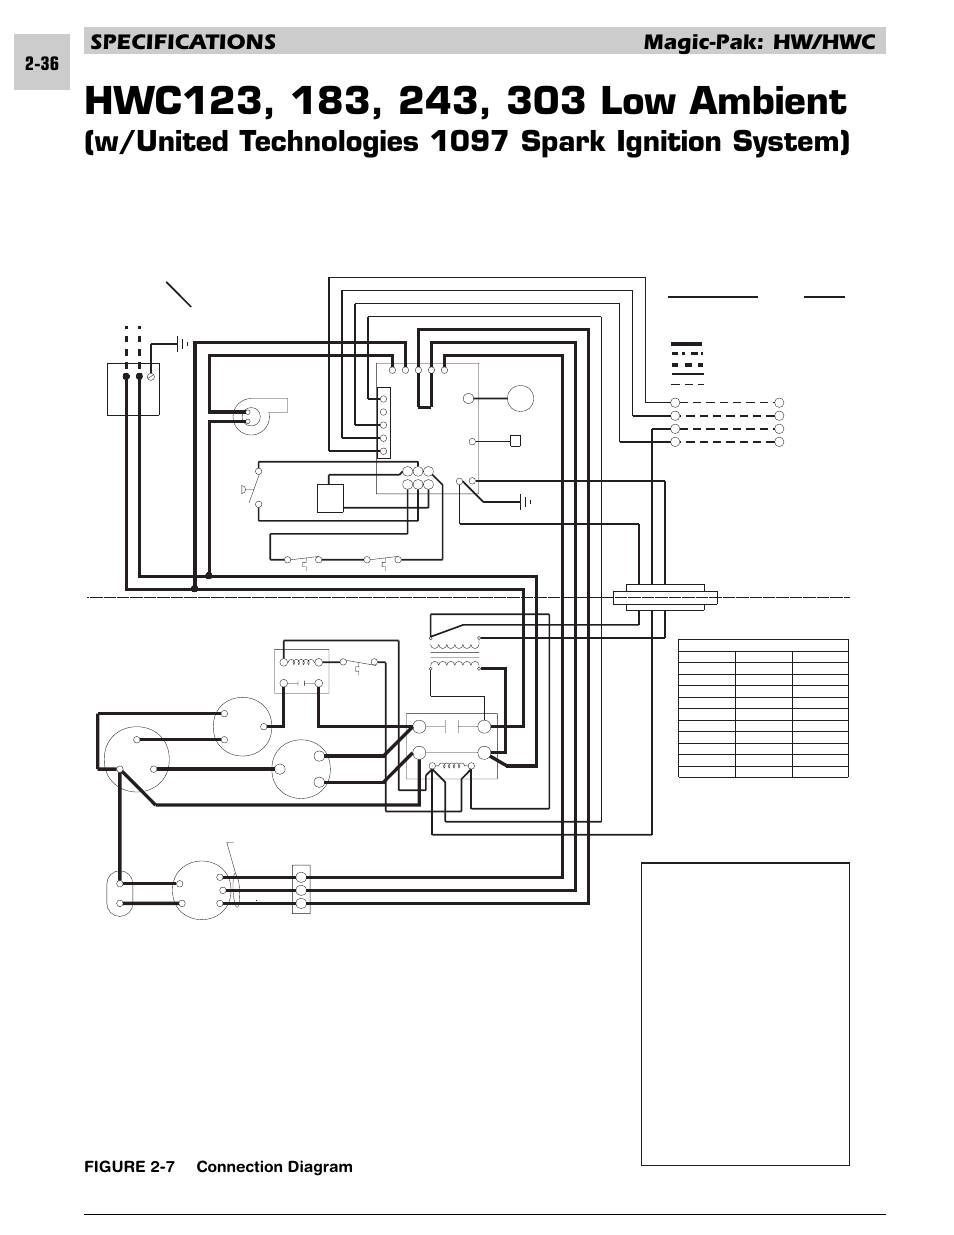 W/united technologies 1097 spark ignition system